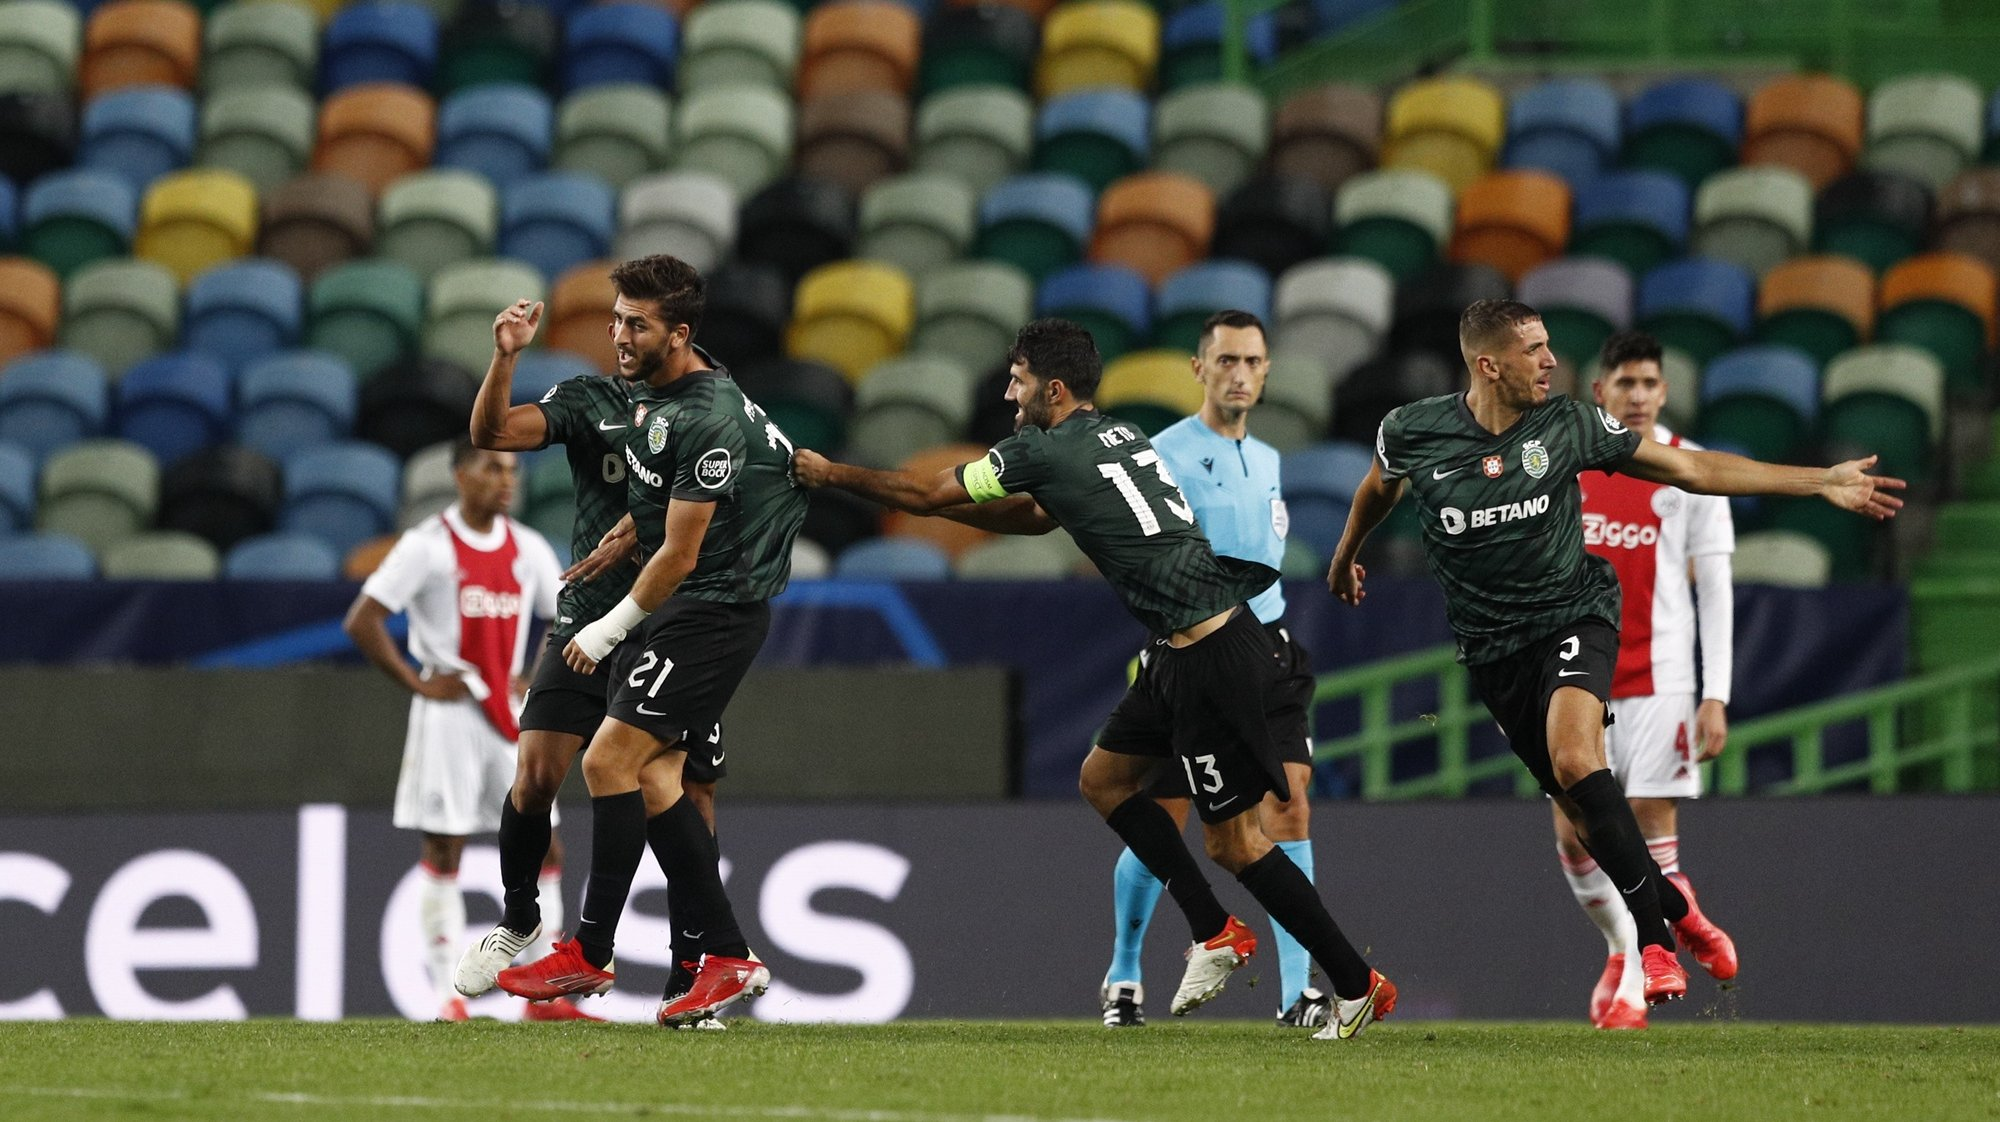 Sporting player Paulinho (L) celebrates after scoring a goal against Ajax during their UEFA Champions League Group C soccer match at Jose Alvalade Stadium in Lisbon, Portugal, 15 September 2021. ANTONIO COTRIM/LUSA